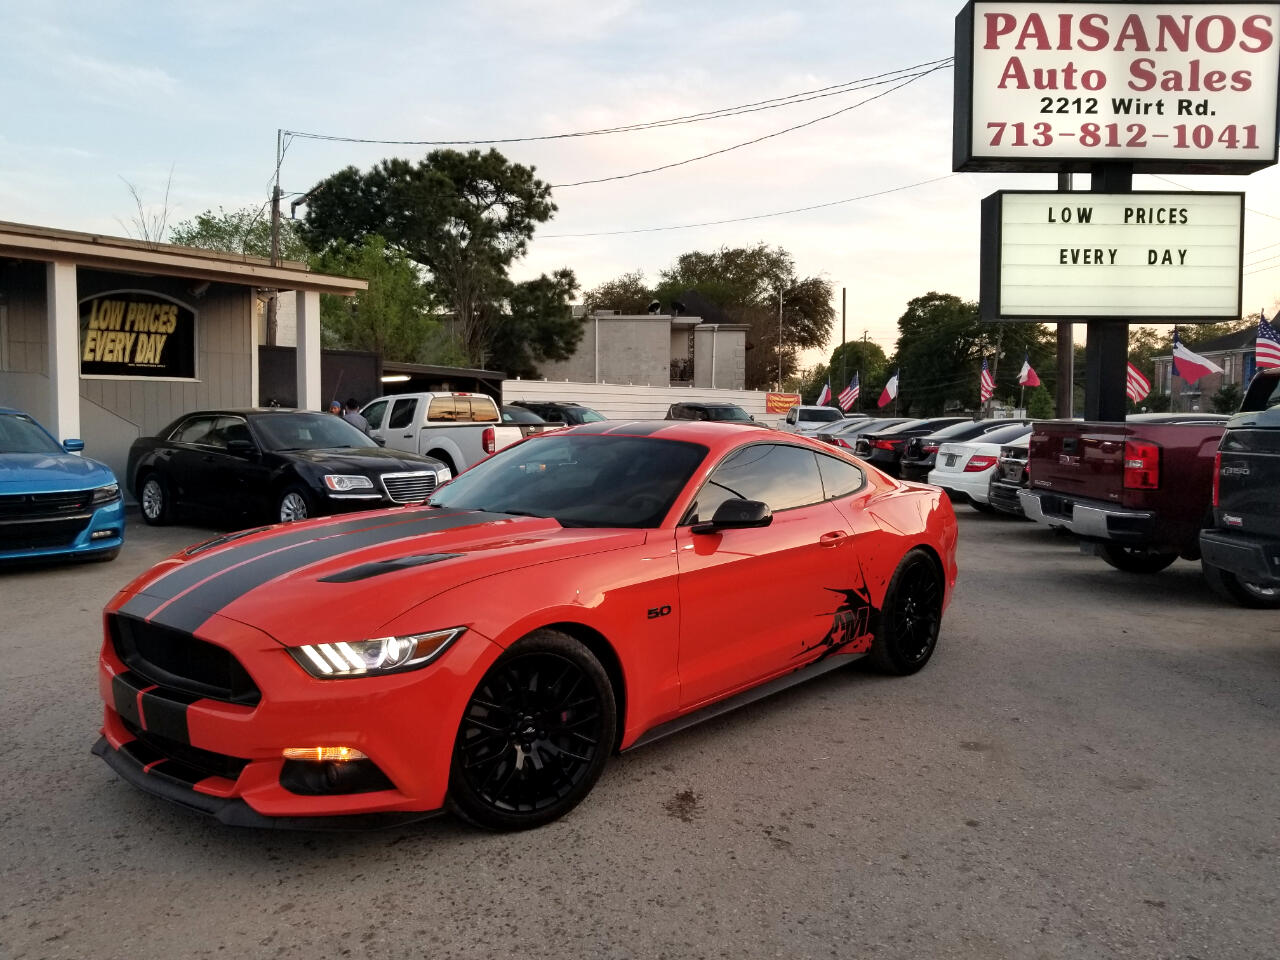 Paisanos Auto Sales >> Used 2015 Ford Mustang GT Coupe for Sale in Houston TX 77055 Paisanos Auto